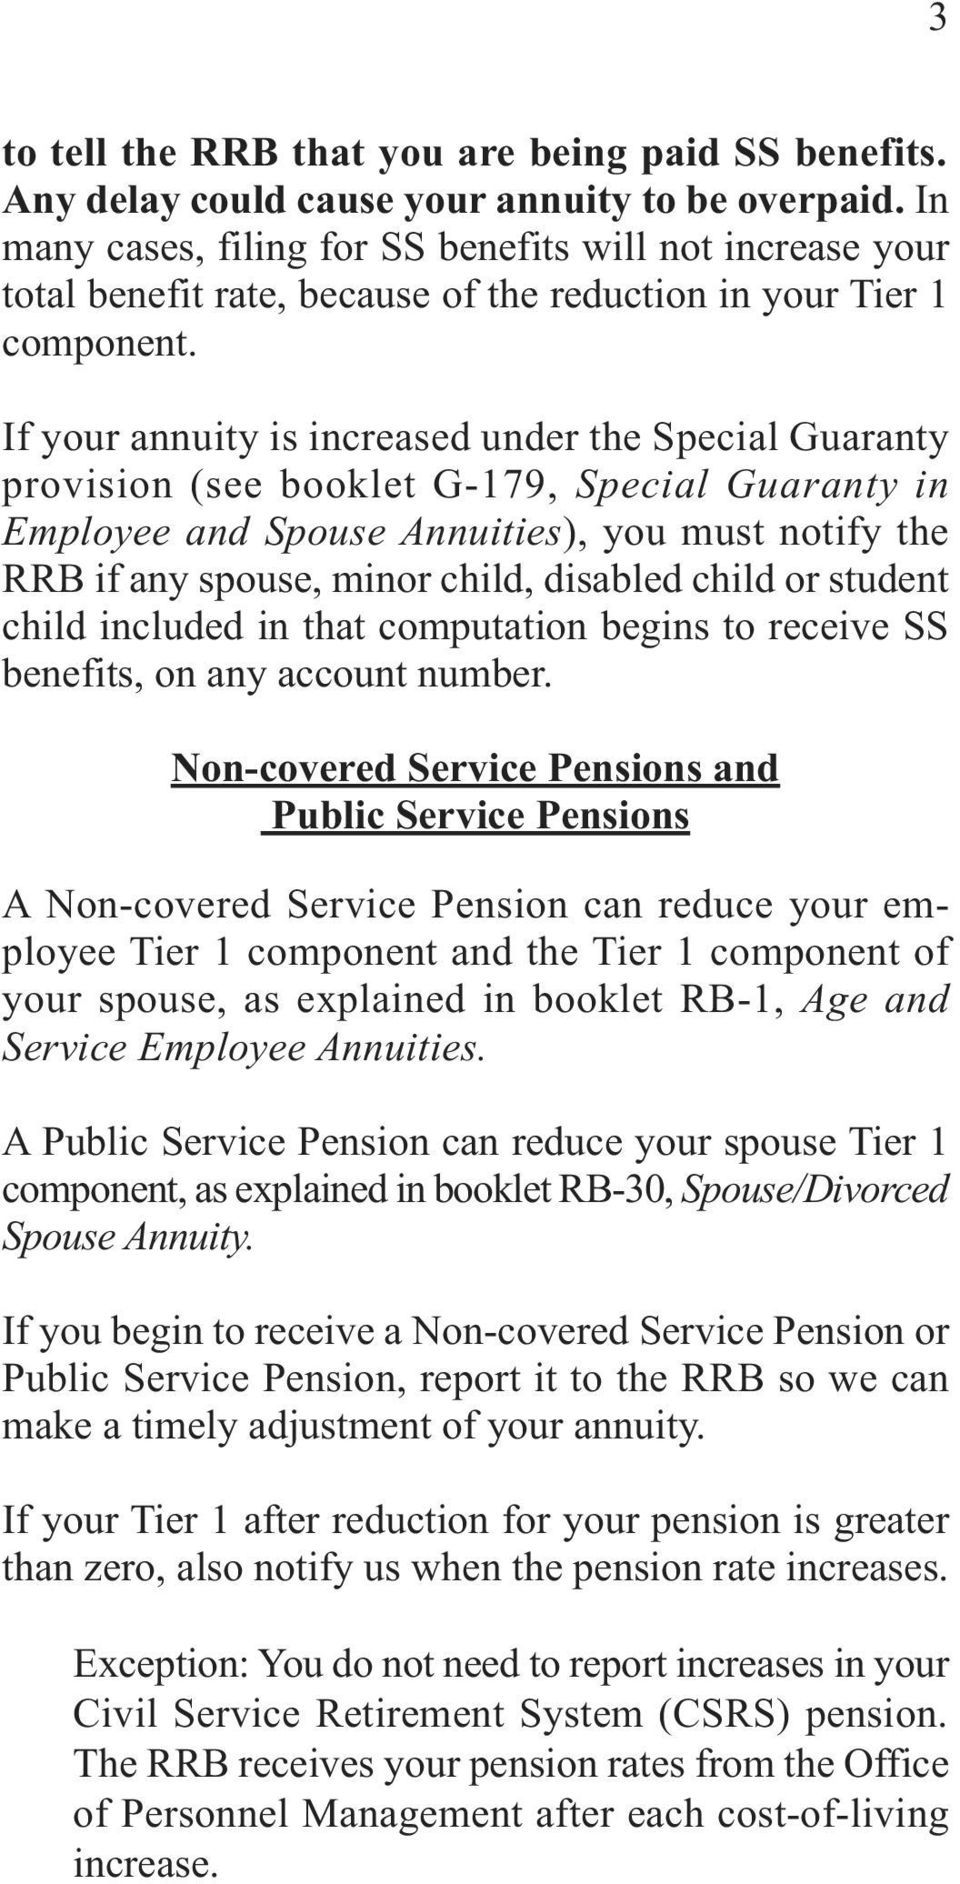 If your annuity is increased under the Special Guaranty provision (see booklet G-179, Special Guaranty in Employee and Spouse Annuities), you must notify the RRB if any spouse, minor child, disabled